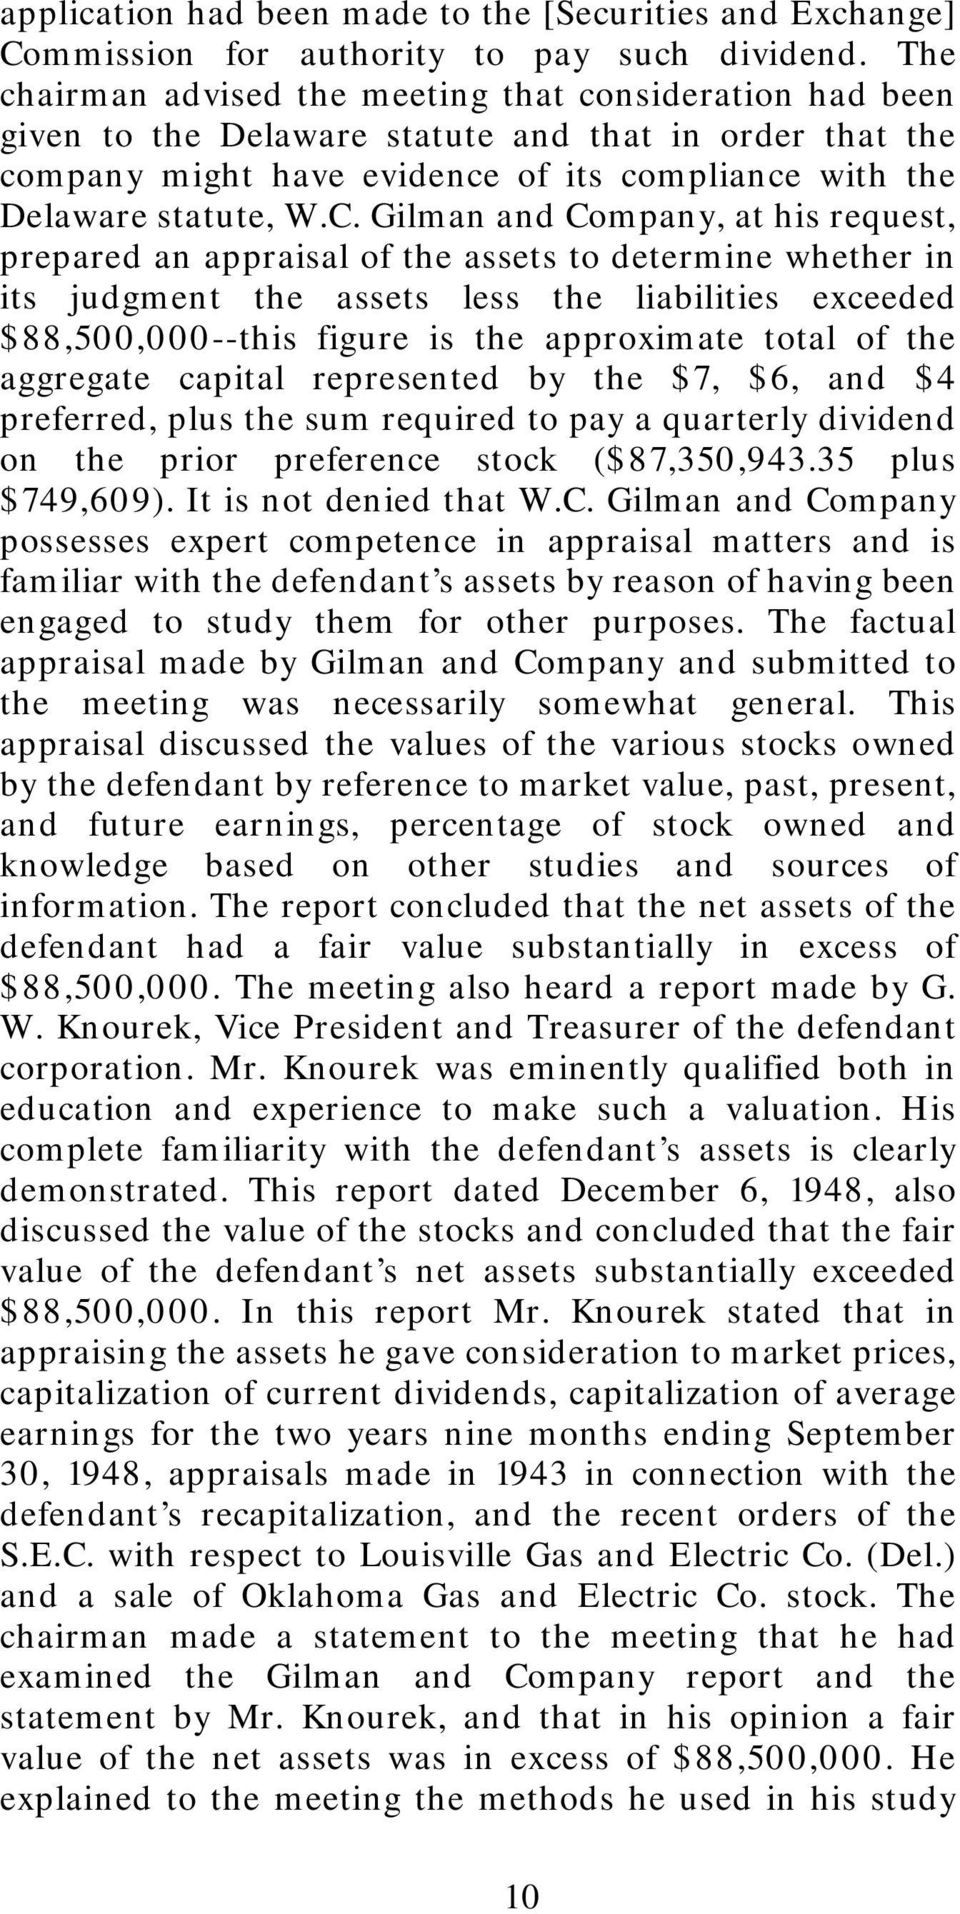 Gilman and Company, at his request, prepared an appraisal of the assets to determine whether in its judgment the assets less the liabilities exceeded $88,500,000--this figure is the approximate total